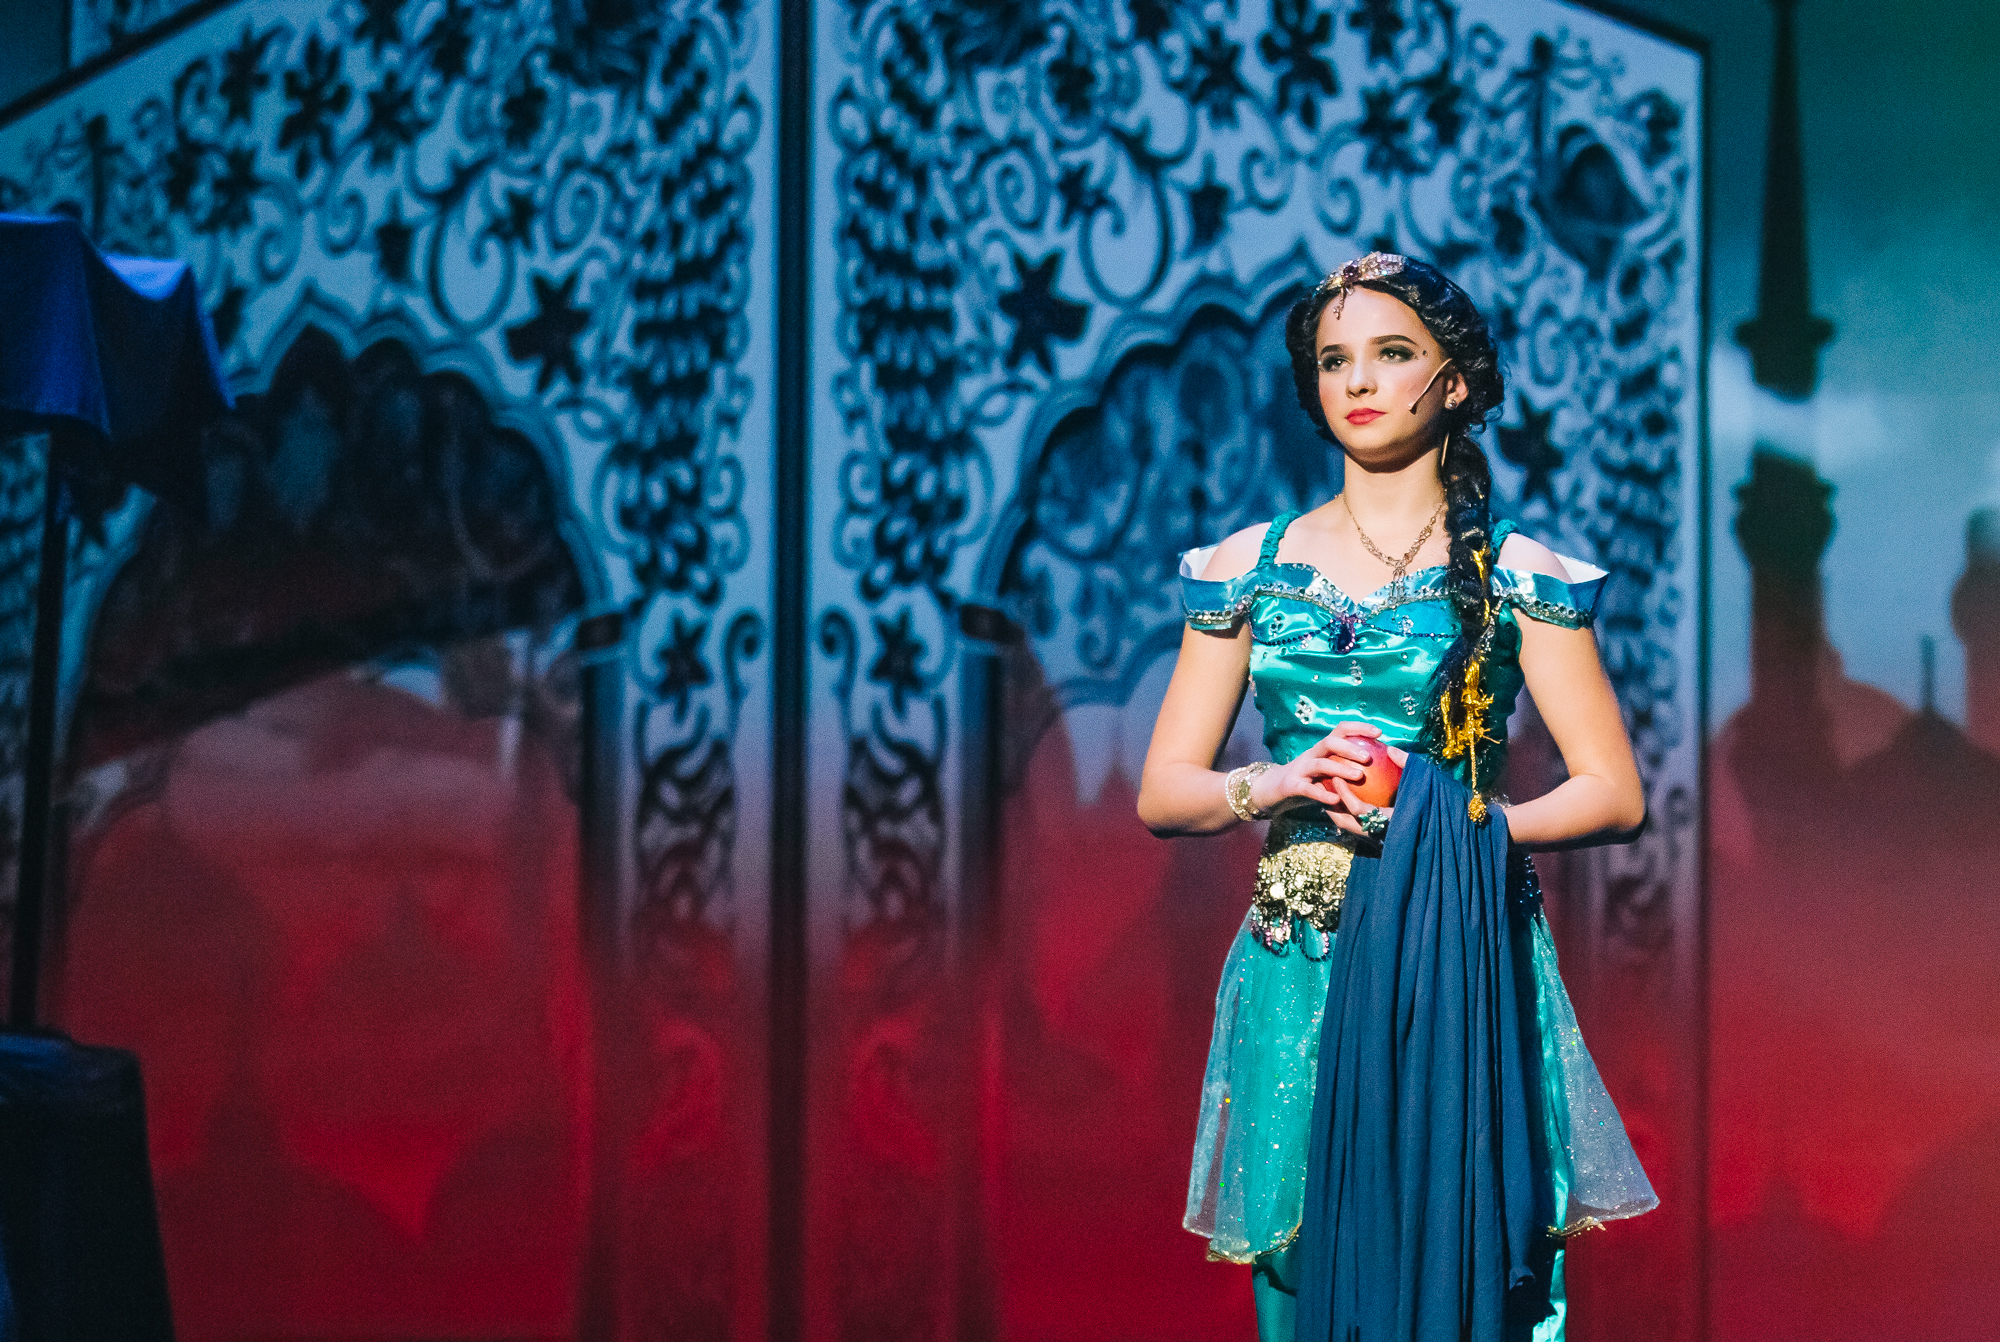 Following last year's sold-out  Aladdin  musical production, this year's  The Little Mermaid Jr.  and the  Beauty and the Beast Jr.  are expected to sell-out quickly.